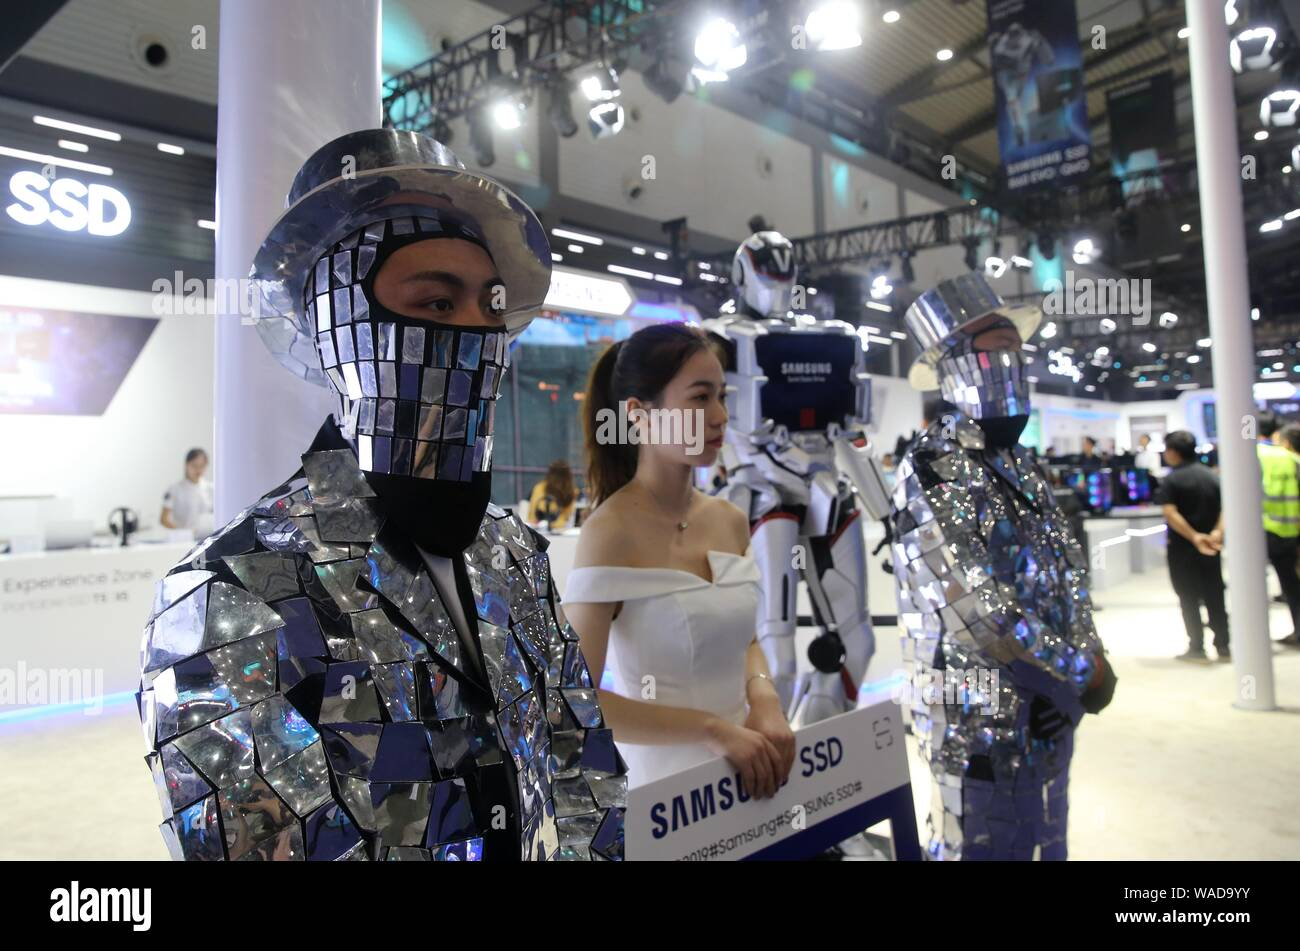 Employees pose at the stand of Samsung during the WCG 2019